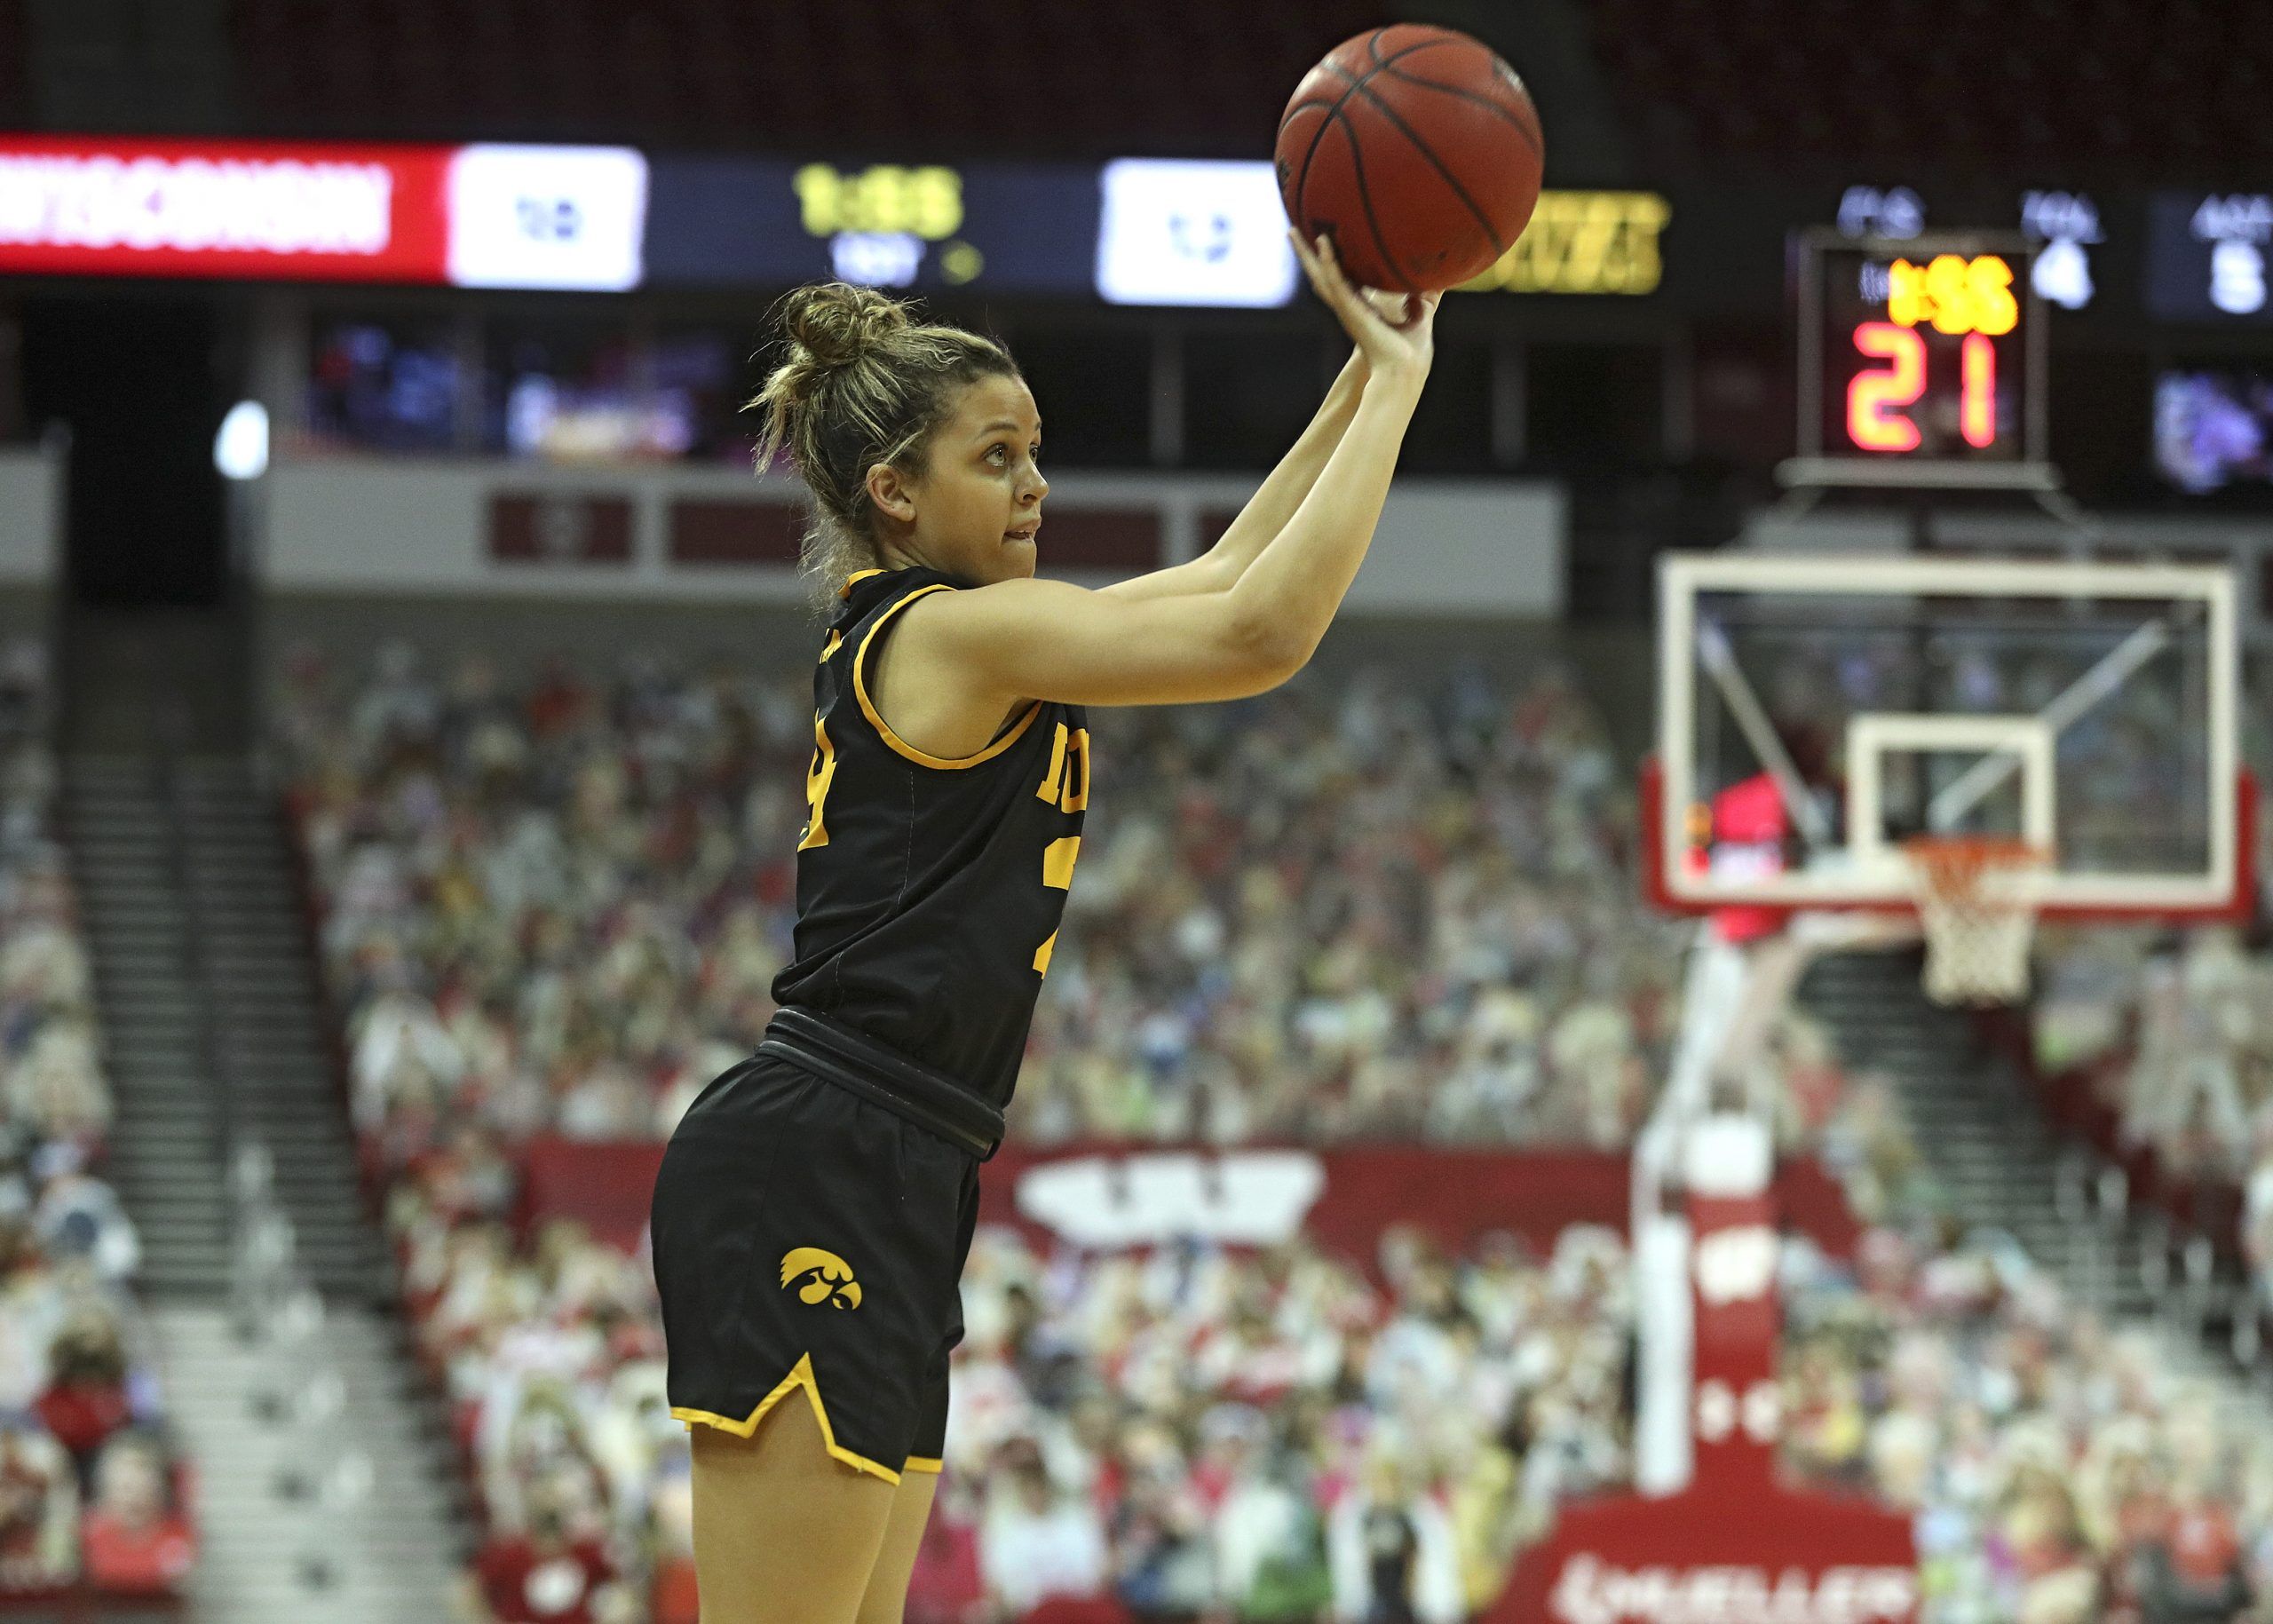 Iowa Women's Basketball at Wisconsin